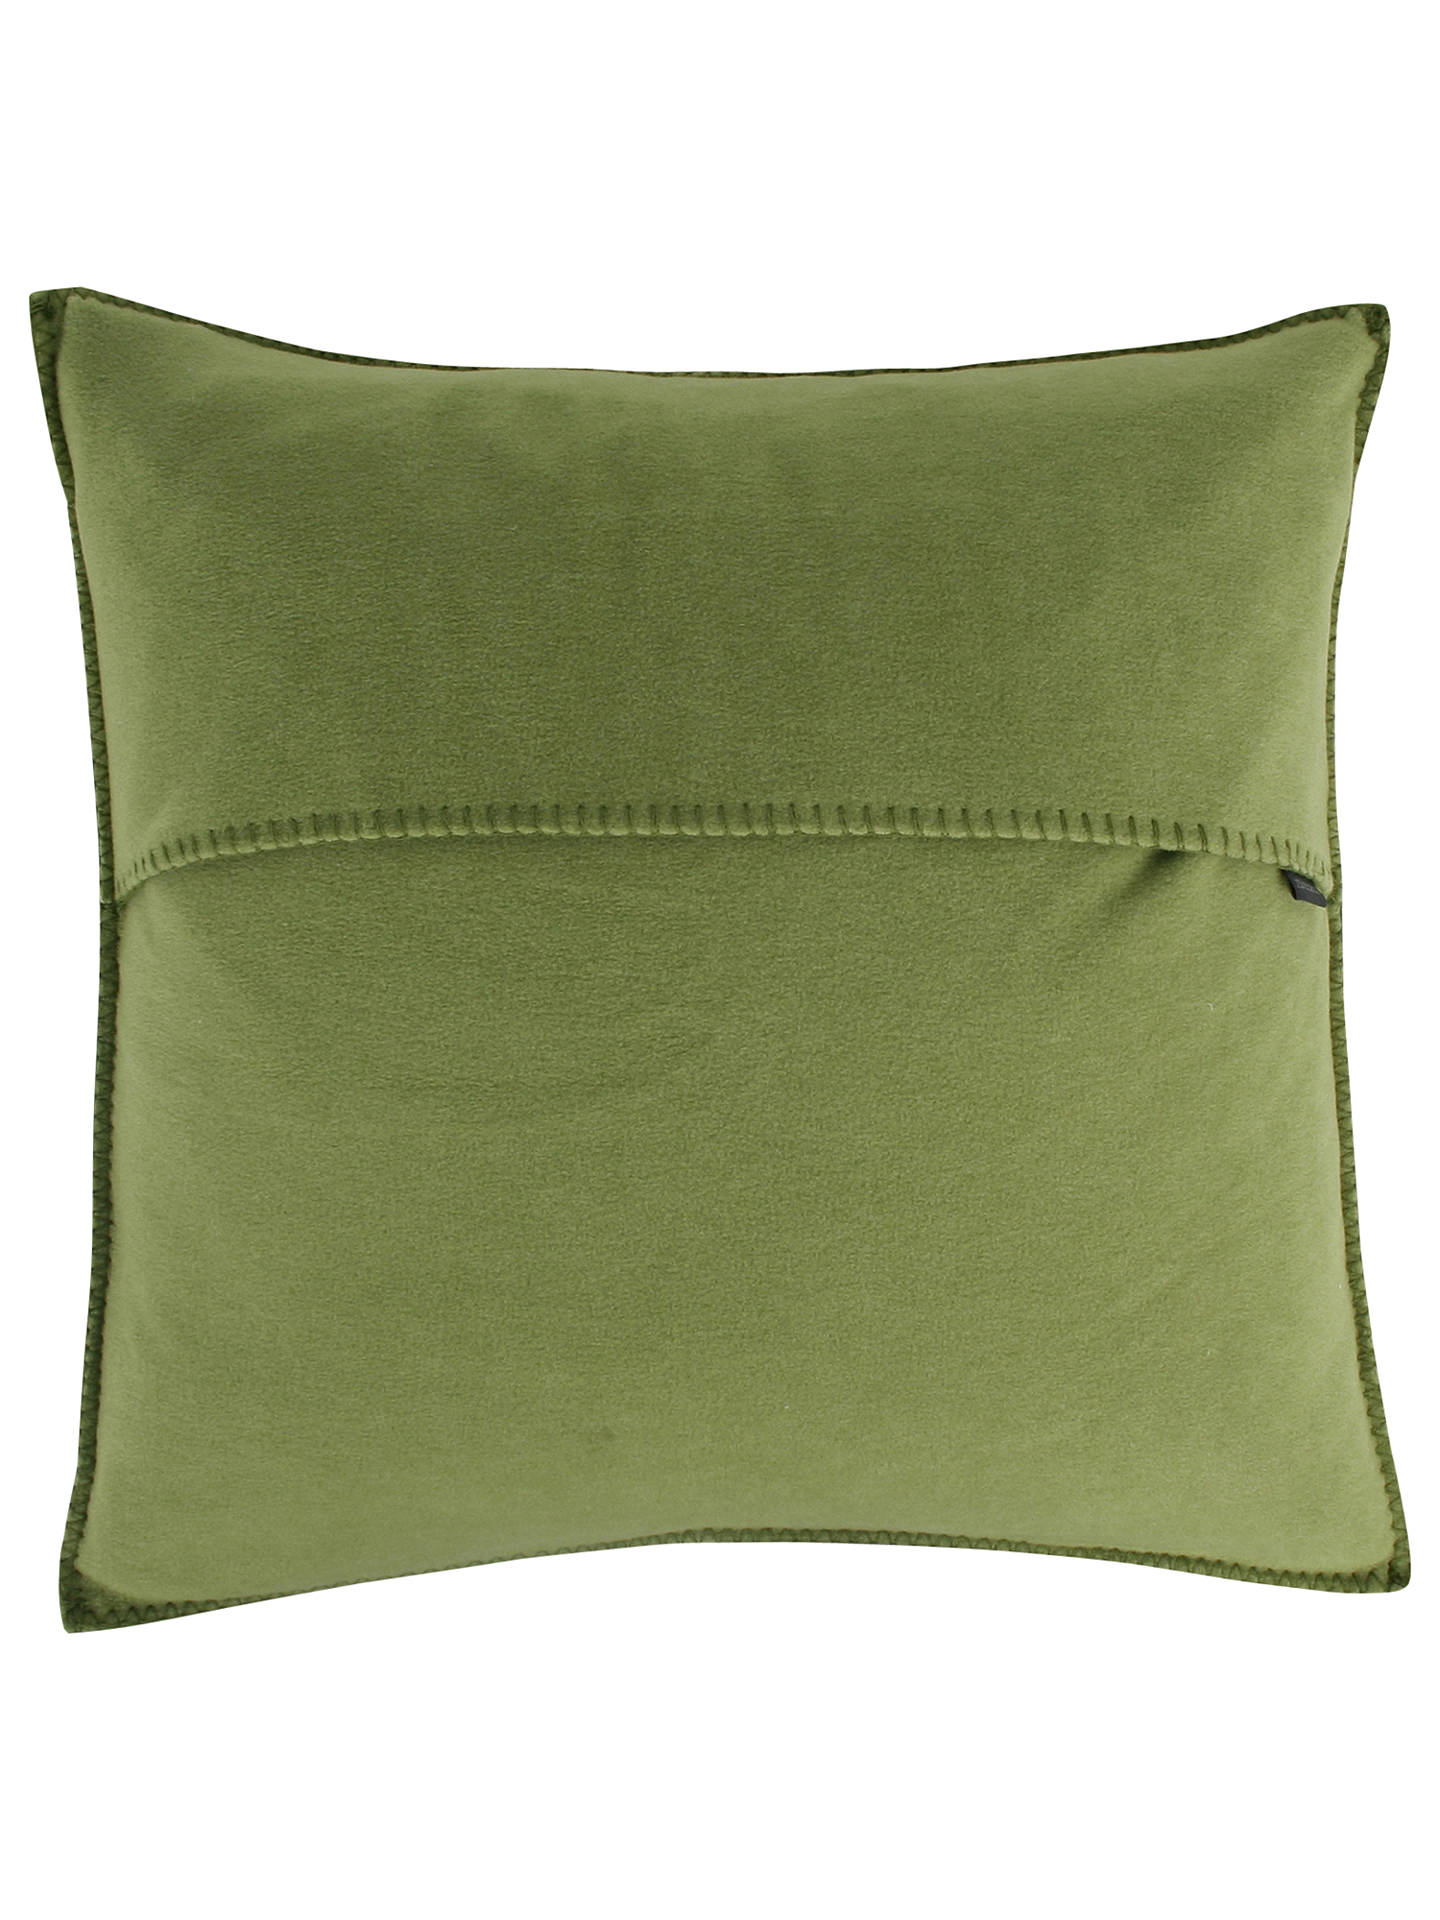 Astounding Zoeppritz Dekoration Von Buyzoeppritz Fleece Stitch Cushion Cover, Green Neutural